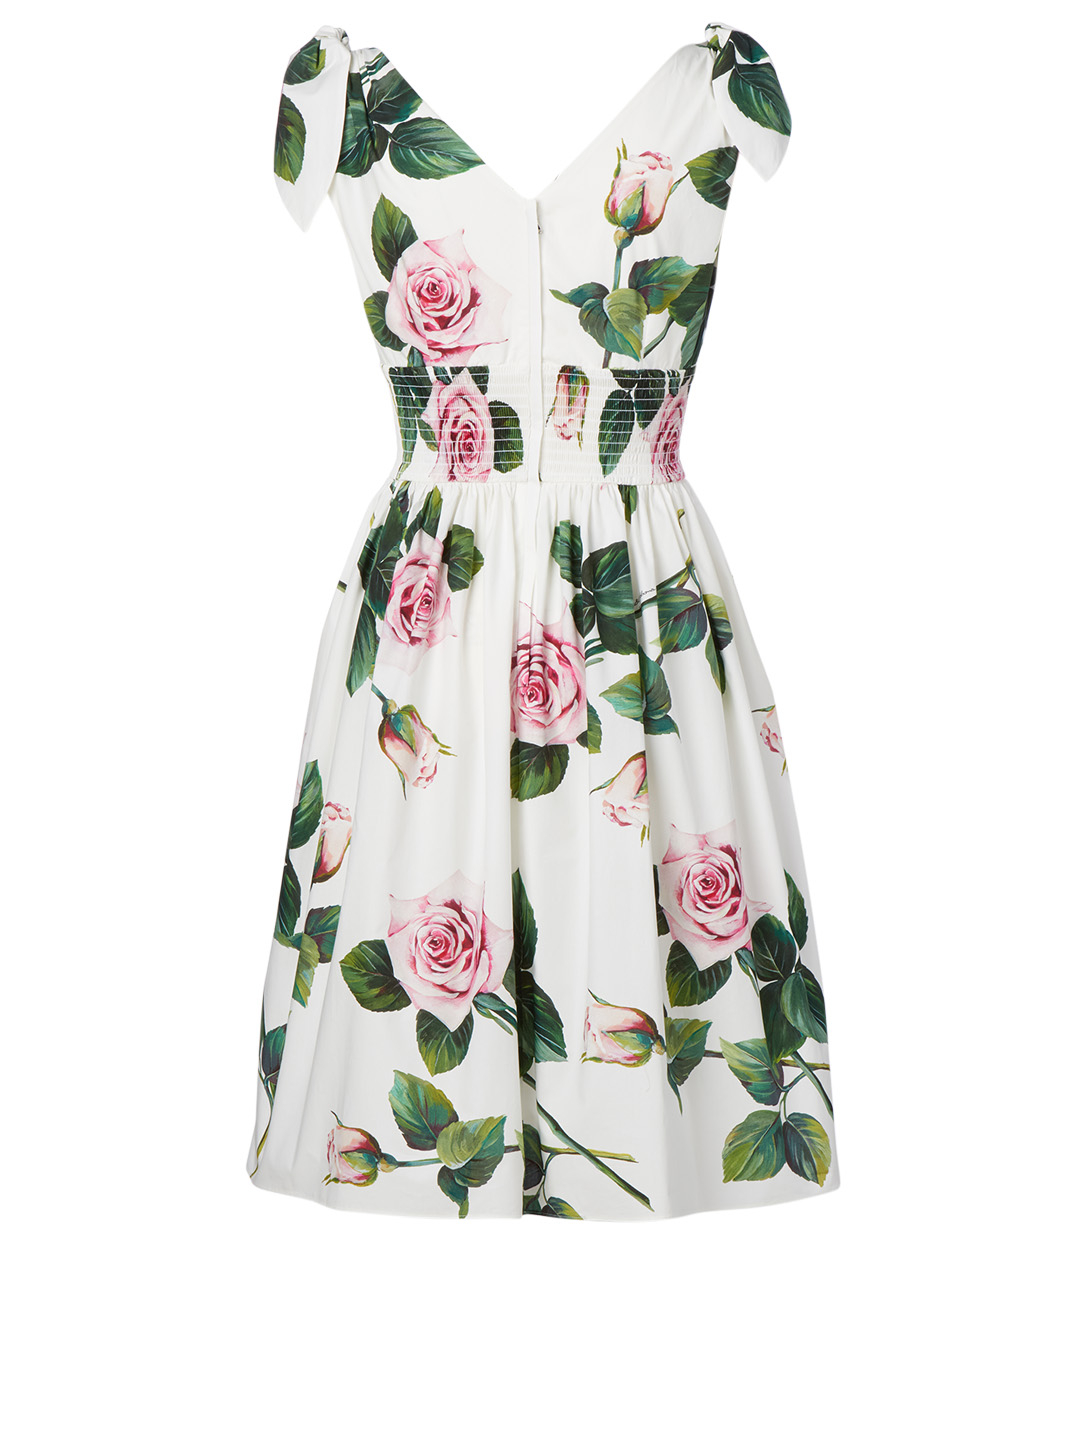 DOLCE & GABBANA Cotton Poplin Dress In Tropical Rose Print Women's Multi